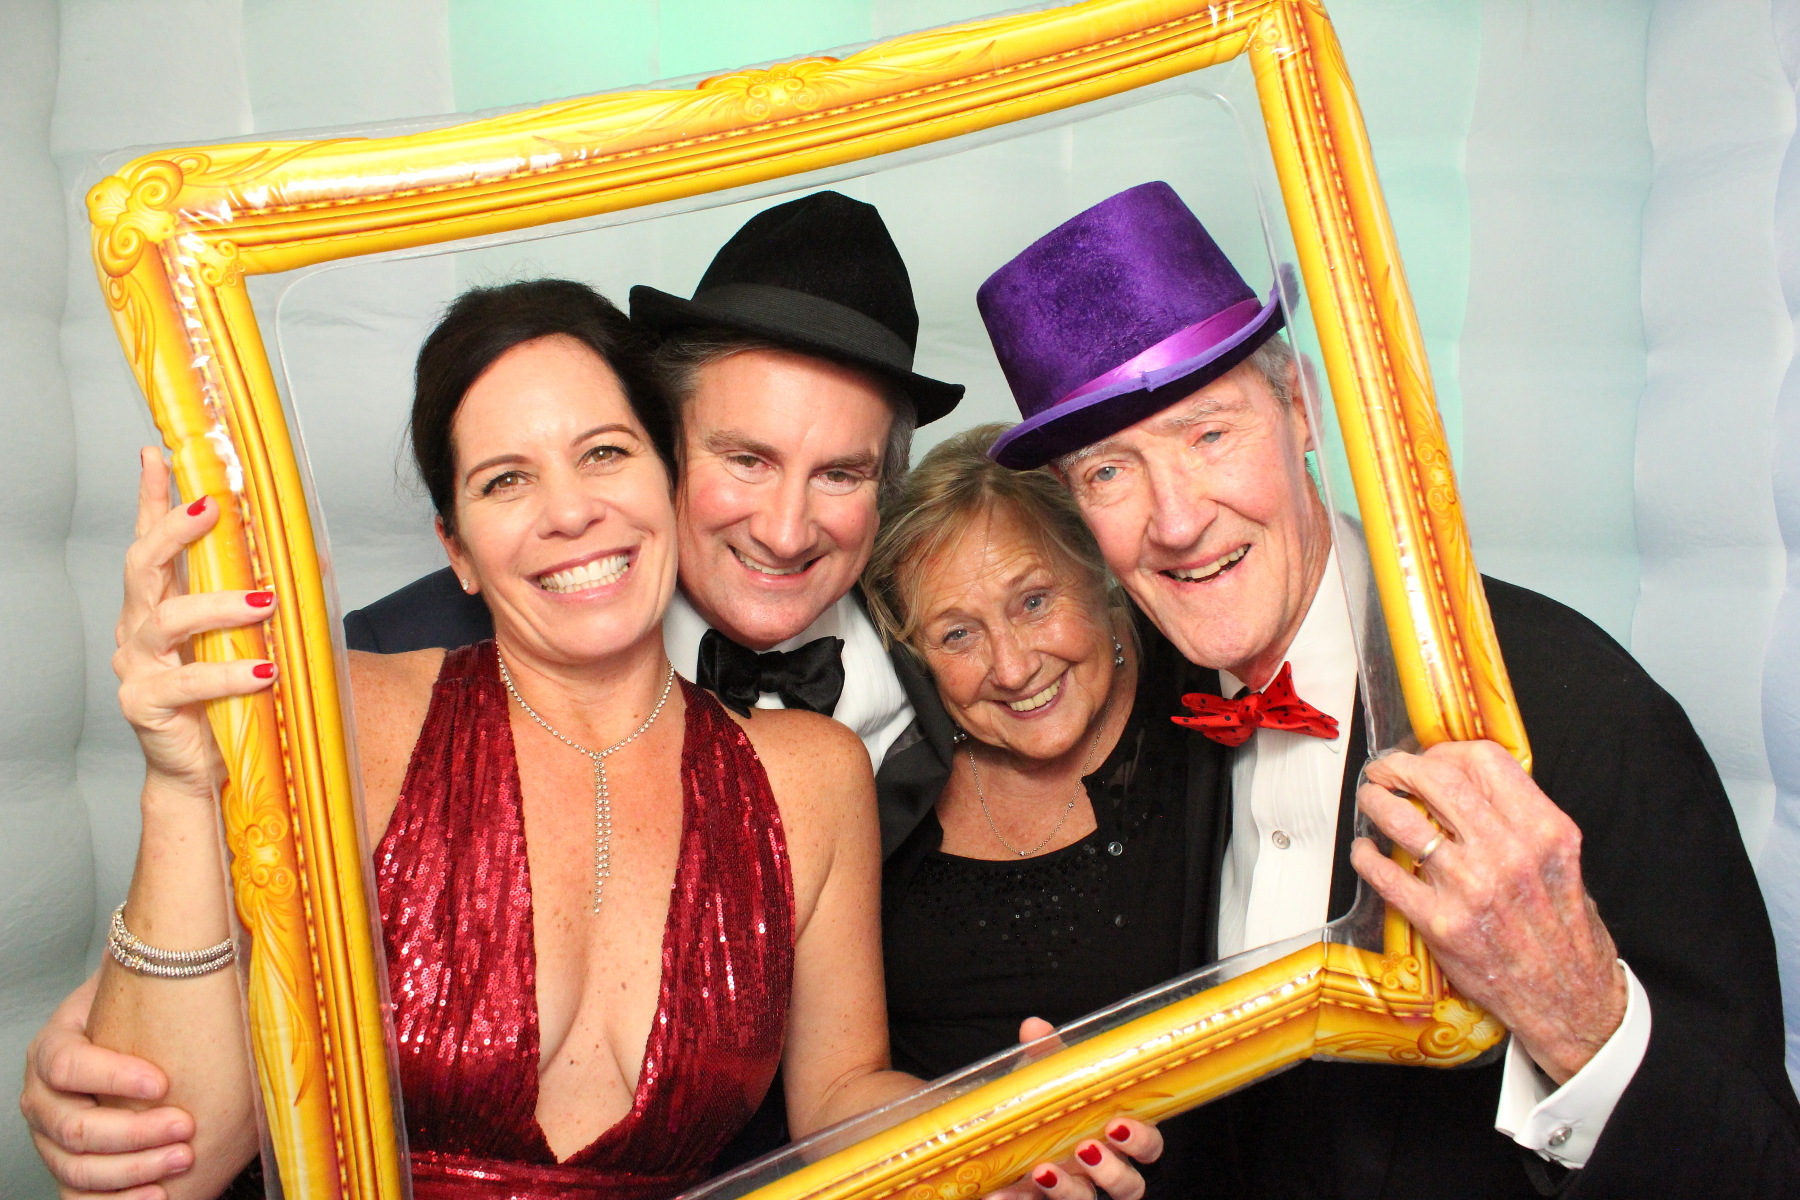 Gallery- Radiant photo booth rental Syracuse NY